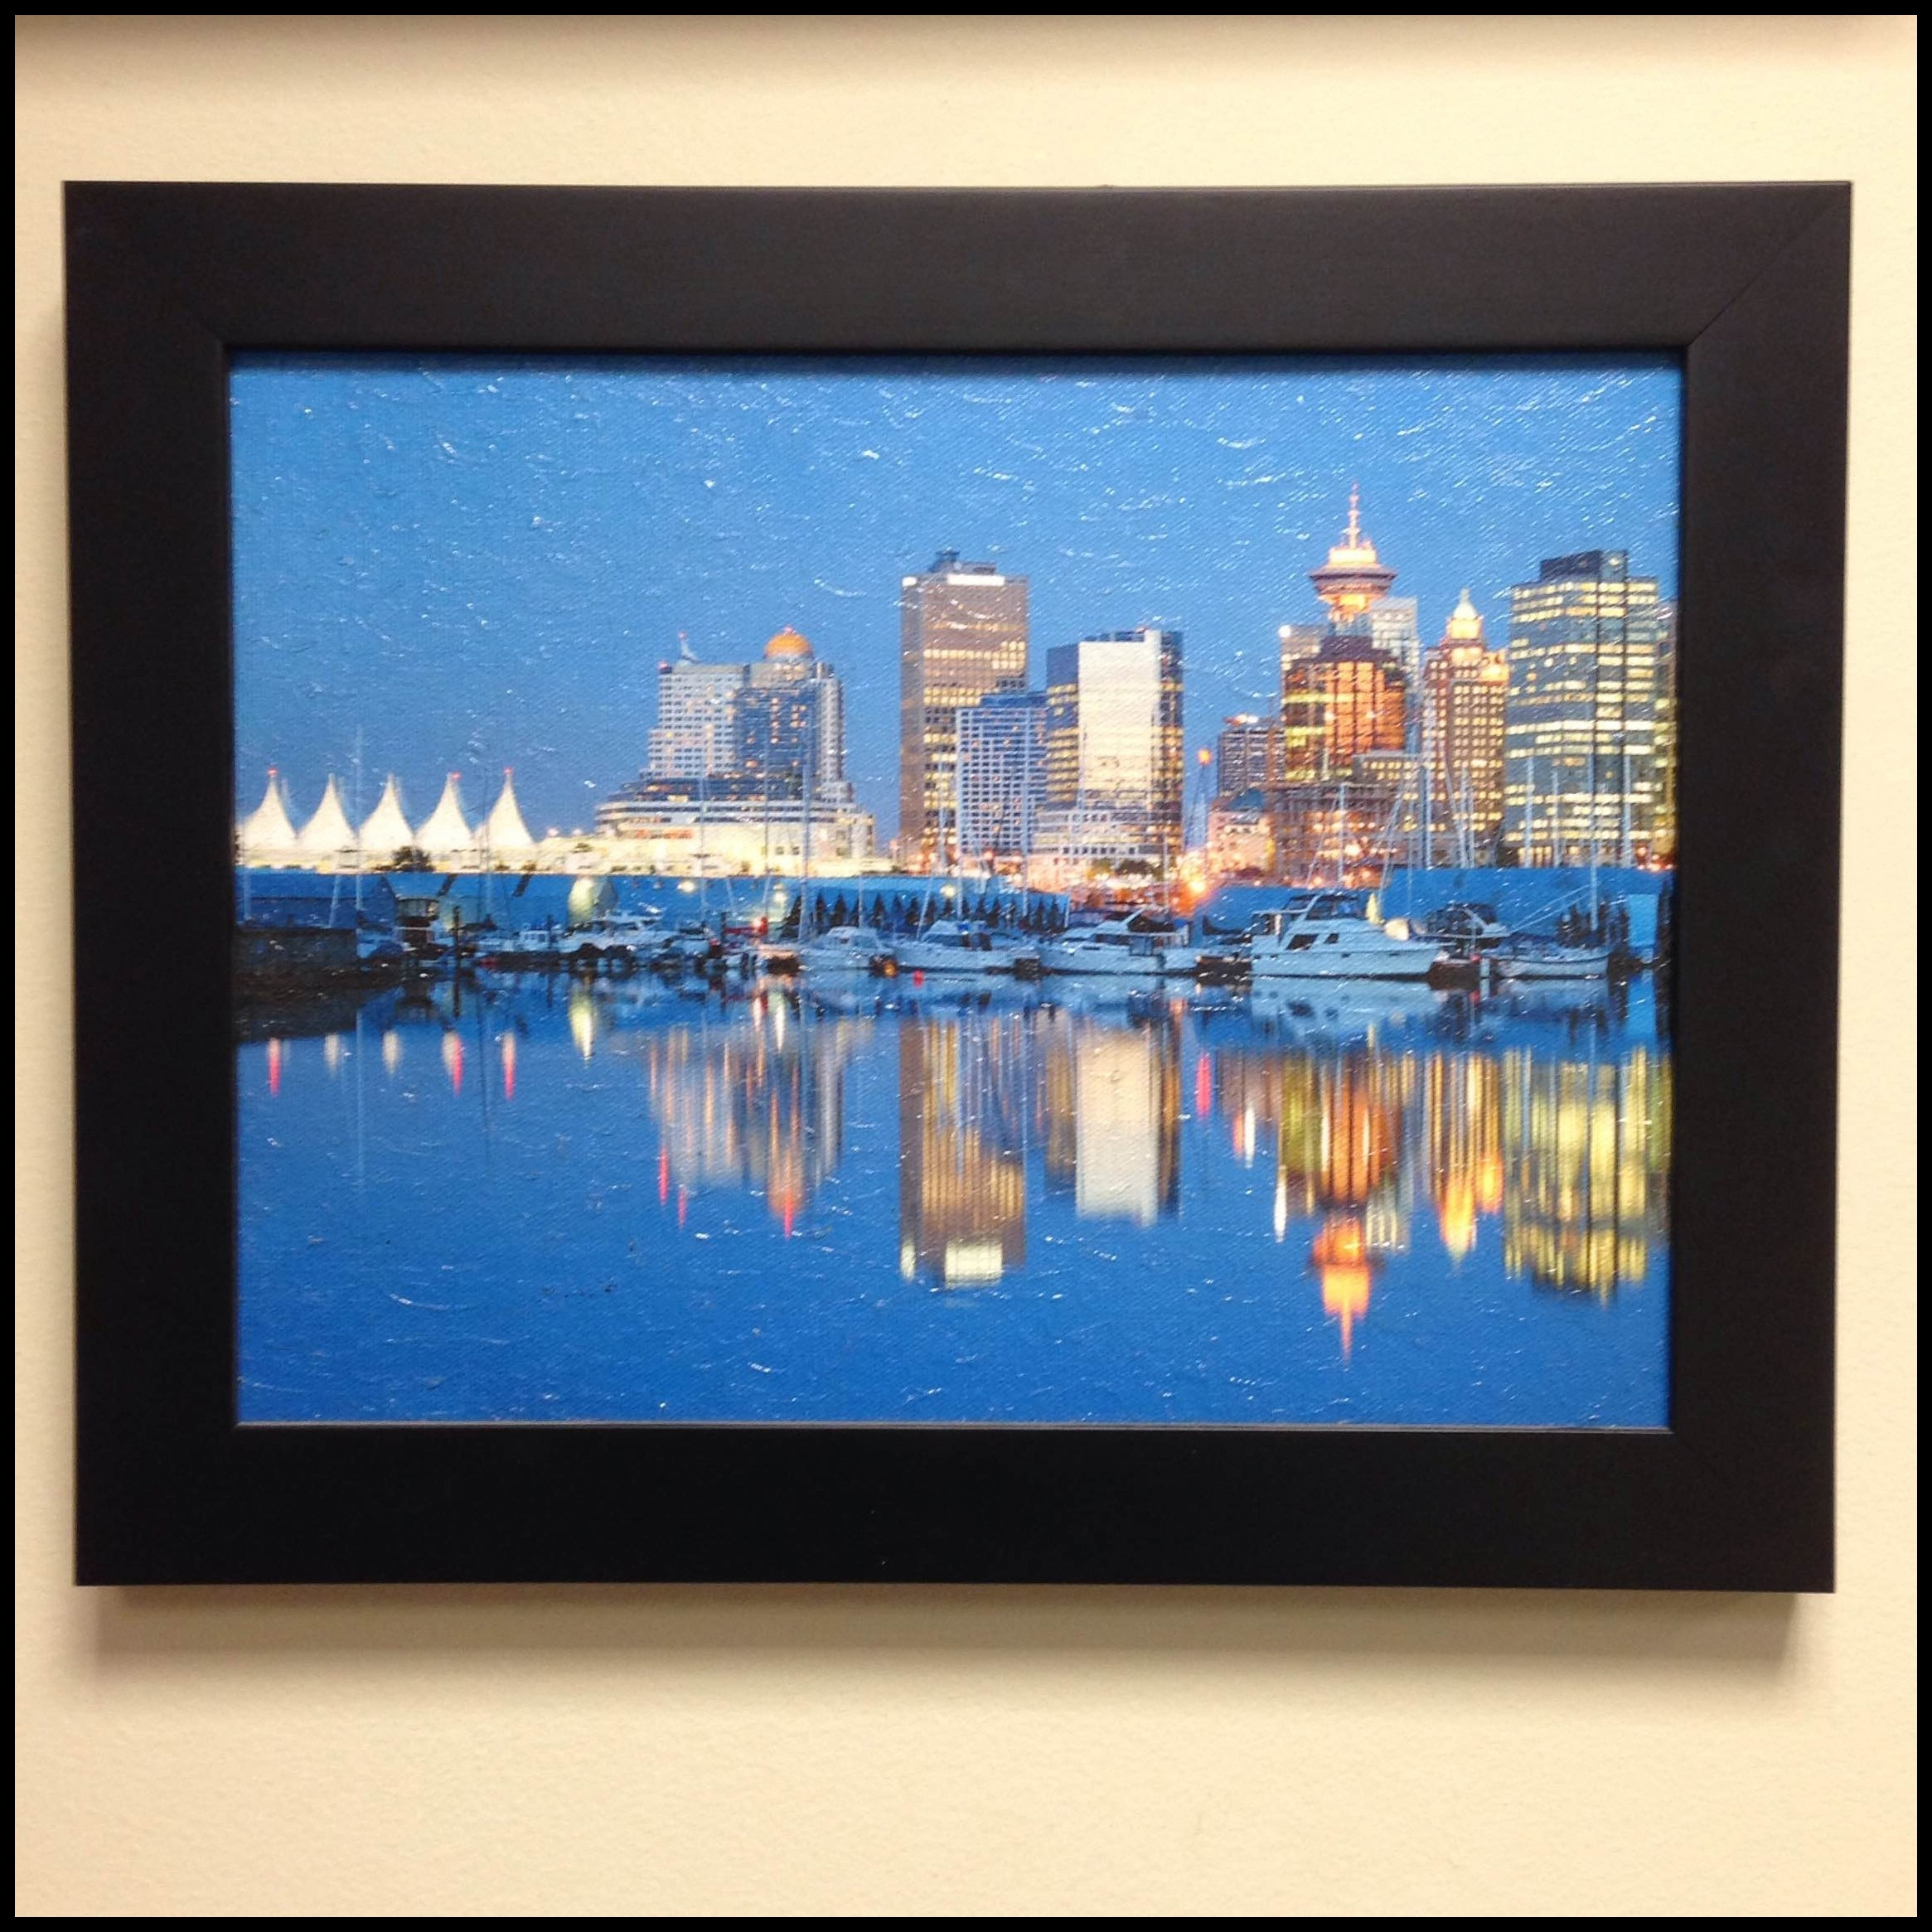 Selecting The Best Frame For Your Canvas Print Or Fine Art With Regard To Latest Black Framed Art Prints (View 13 of 15)